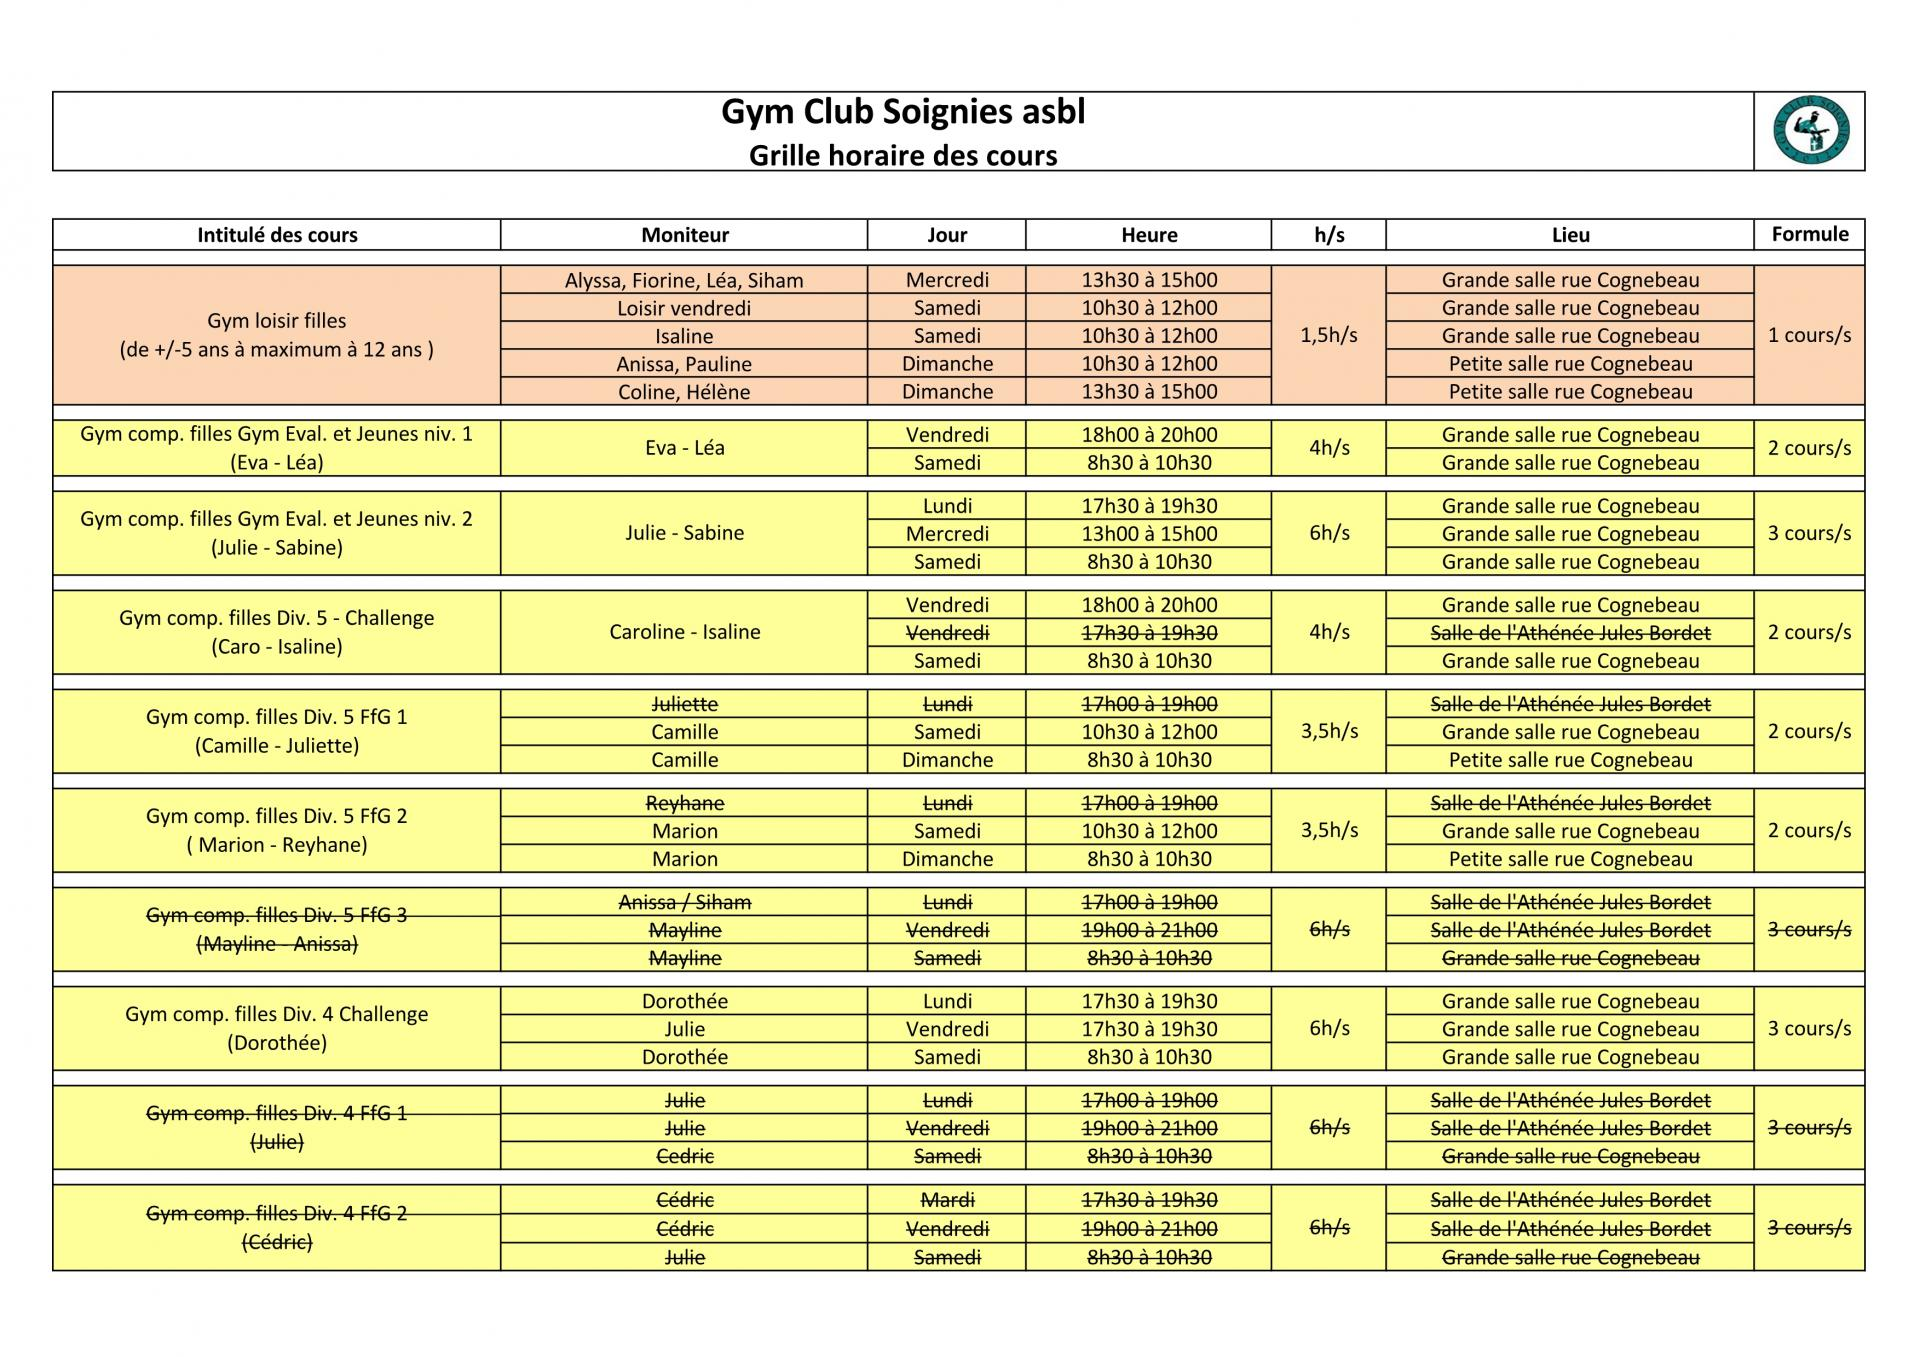 20210327 grille horaire covid